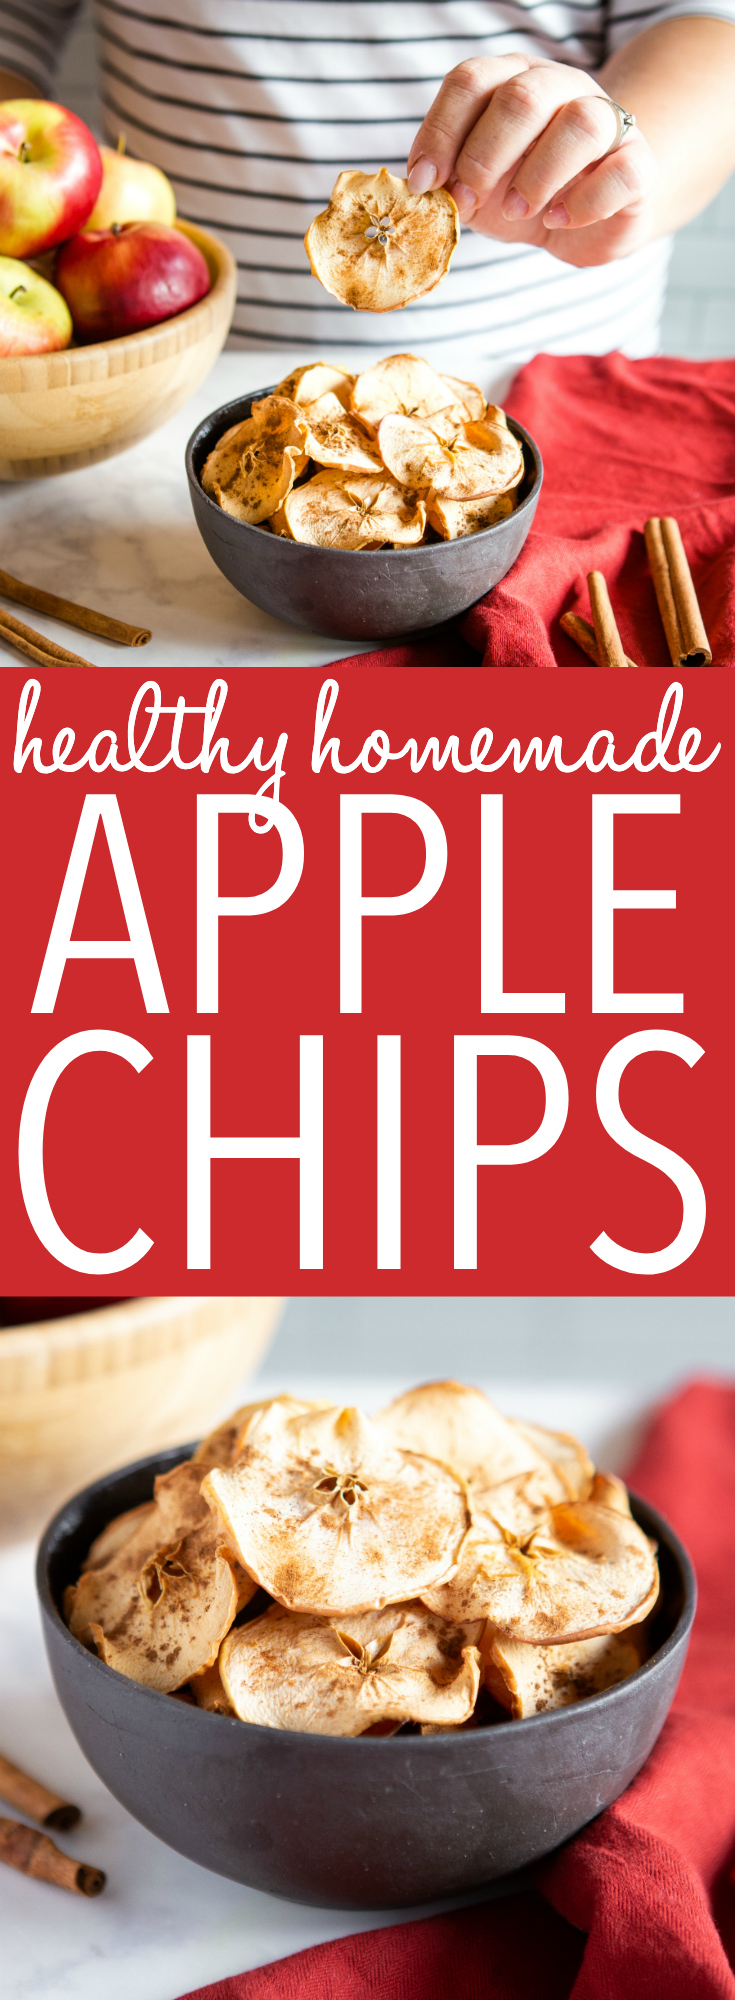 This Healthy Homemade Apple Chips recipe is easy to make, and homemade apple chips are the perfect healthy snack for a fall day. Great for packing into lunch boxes, too! Recipe from thebusybaker.ca! #apple #chips #snack #afterschool #heathy #backtoschool #kidfriendly #children #kids #lunch #recipe #vegan #health via @busybakerblog